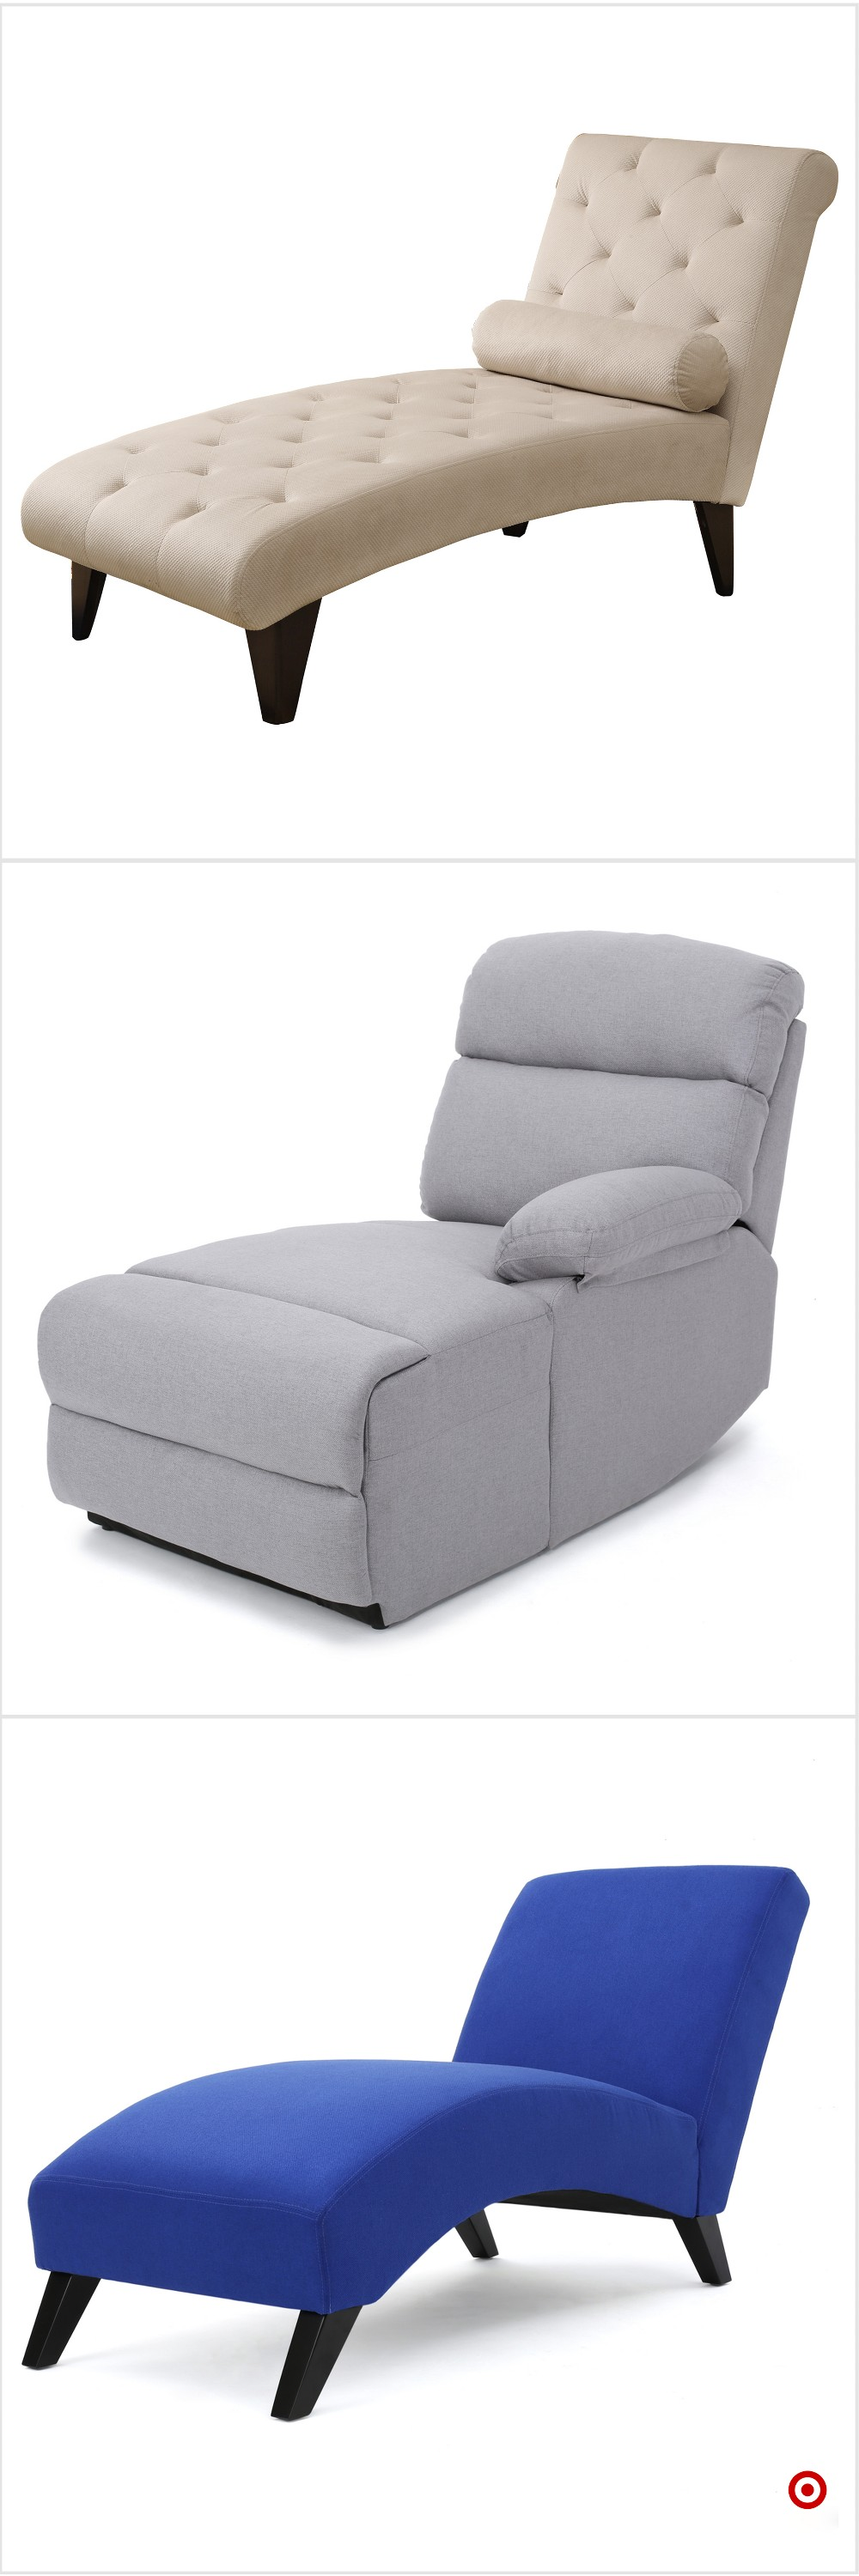 Shop Target for chaise lounge you will love at great low prices. Free shipping on  sc 1 st  Pinterest : chaise lounge prices - Sectionals, Sofas & Couches